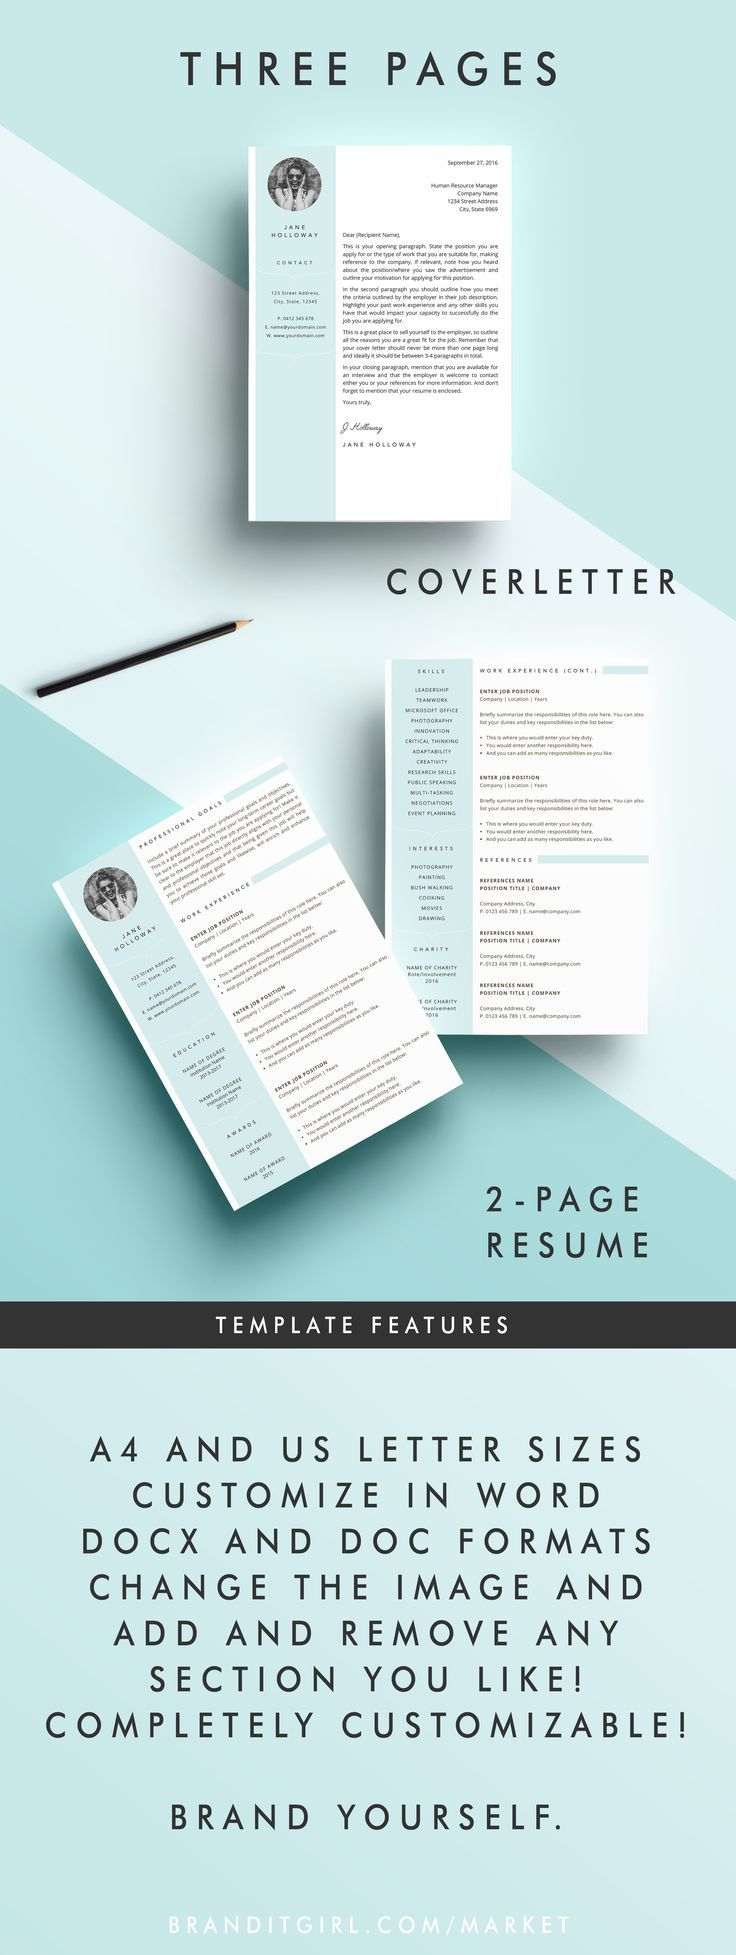 Ats Resume Template%0A Brand yourself with this feminine pretty resume template  Click through and  download it today